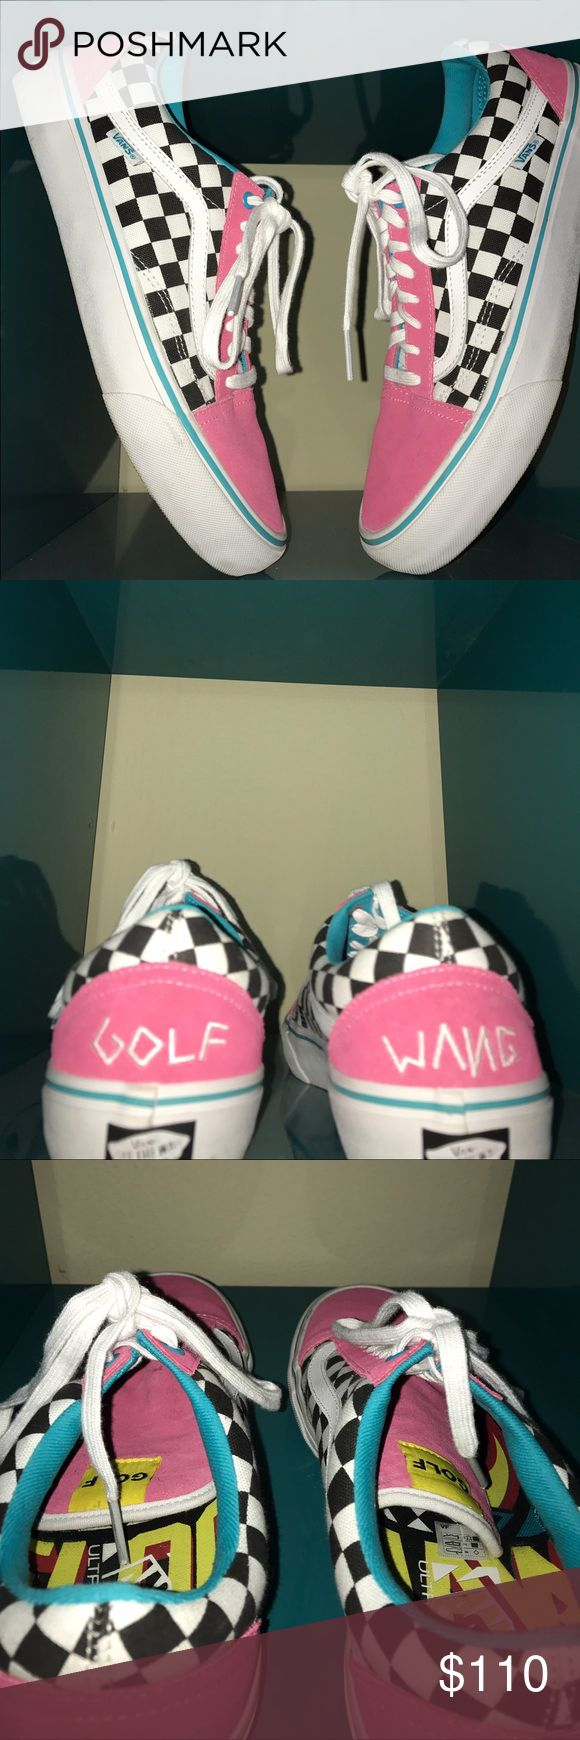 Golf Wang Vans Golf Wang Vans. 9/10 Condition. Size 11. Vans Shoes